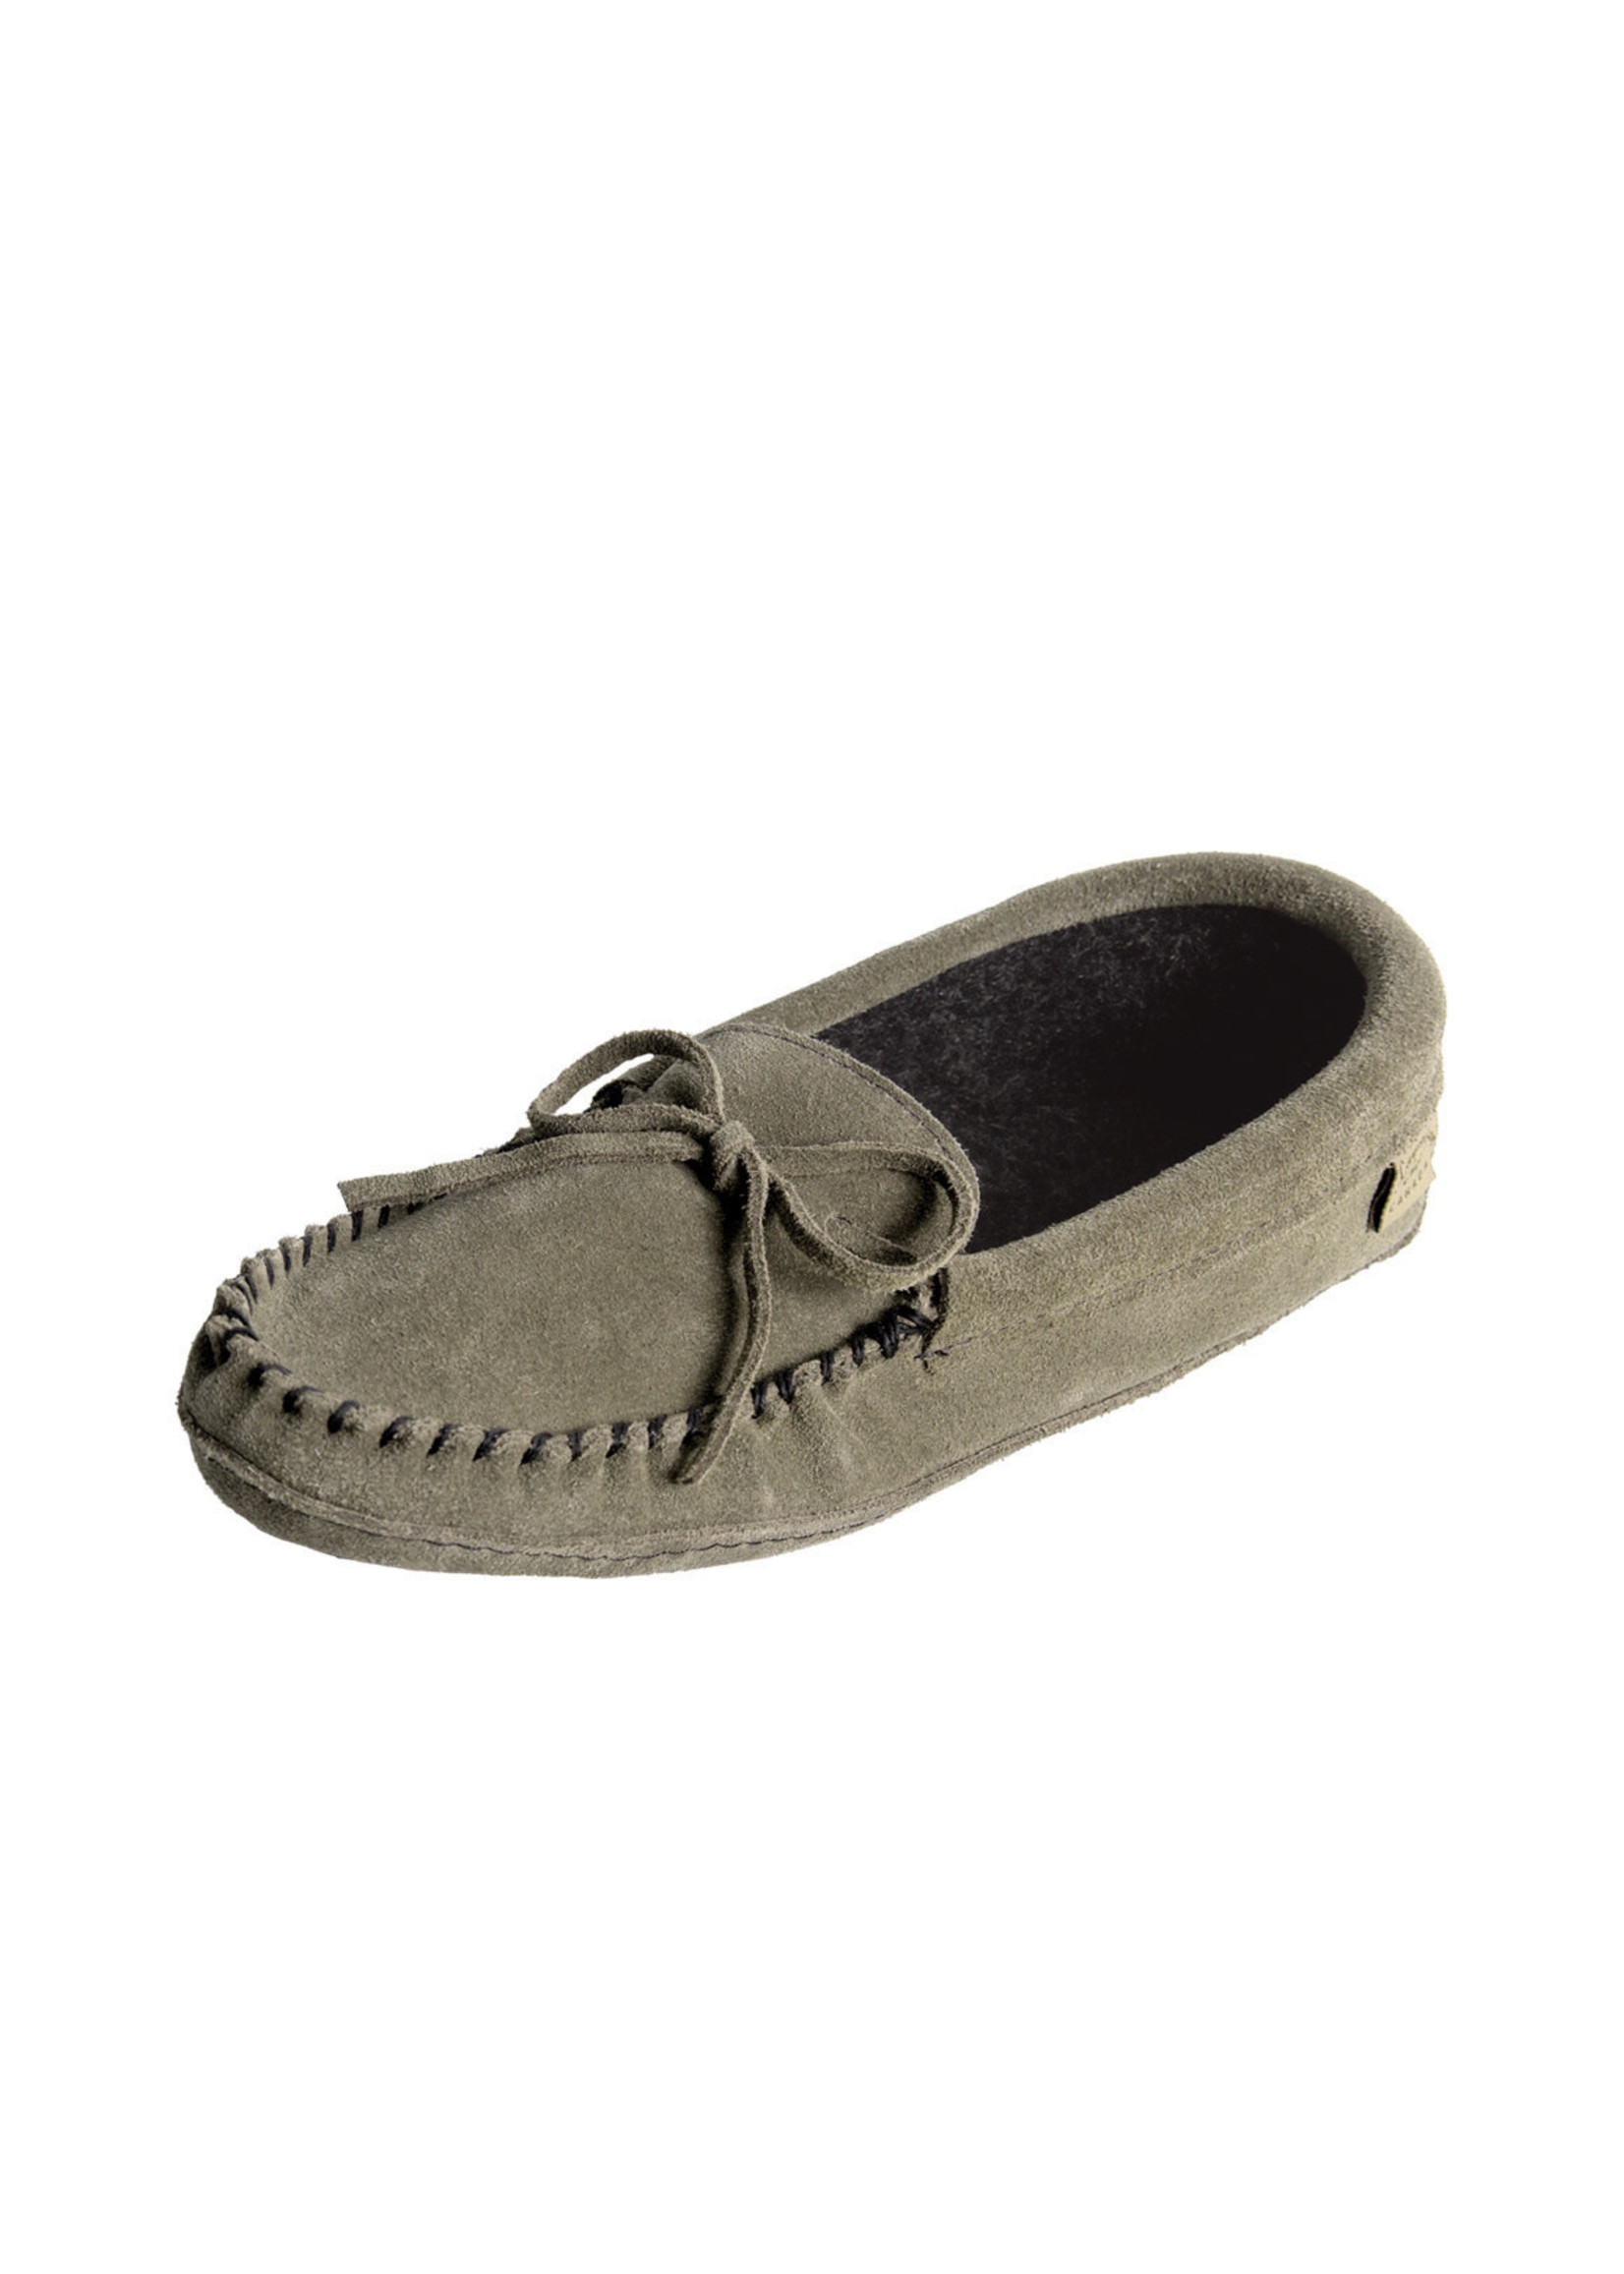 LAURENTIAN CHIEF SUEDE MOCCASINS 7710